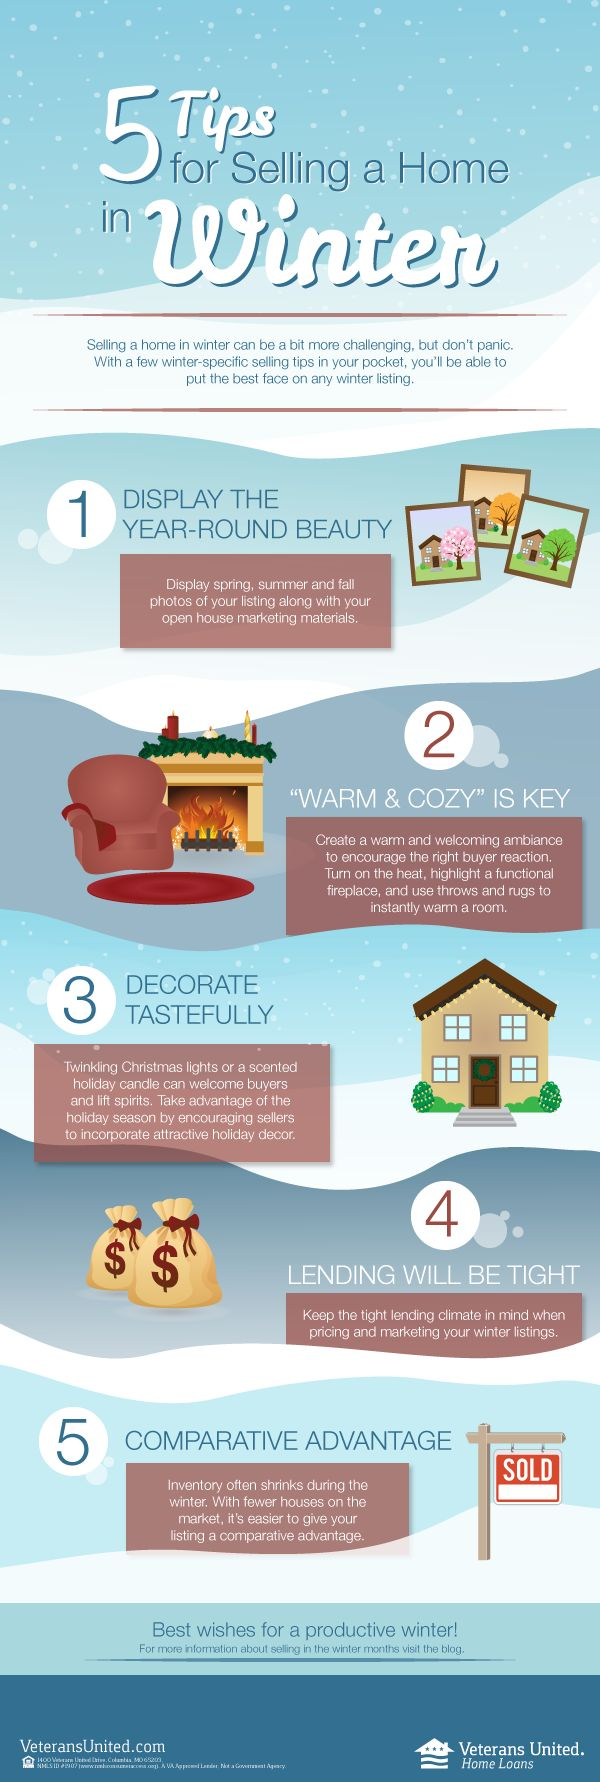 The cold temps don't have to mean a frozen home sale! 4 tips for selling your home in winter.